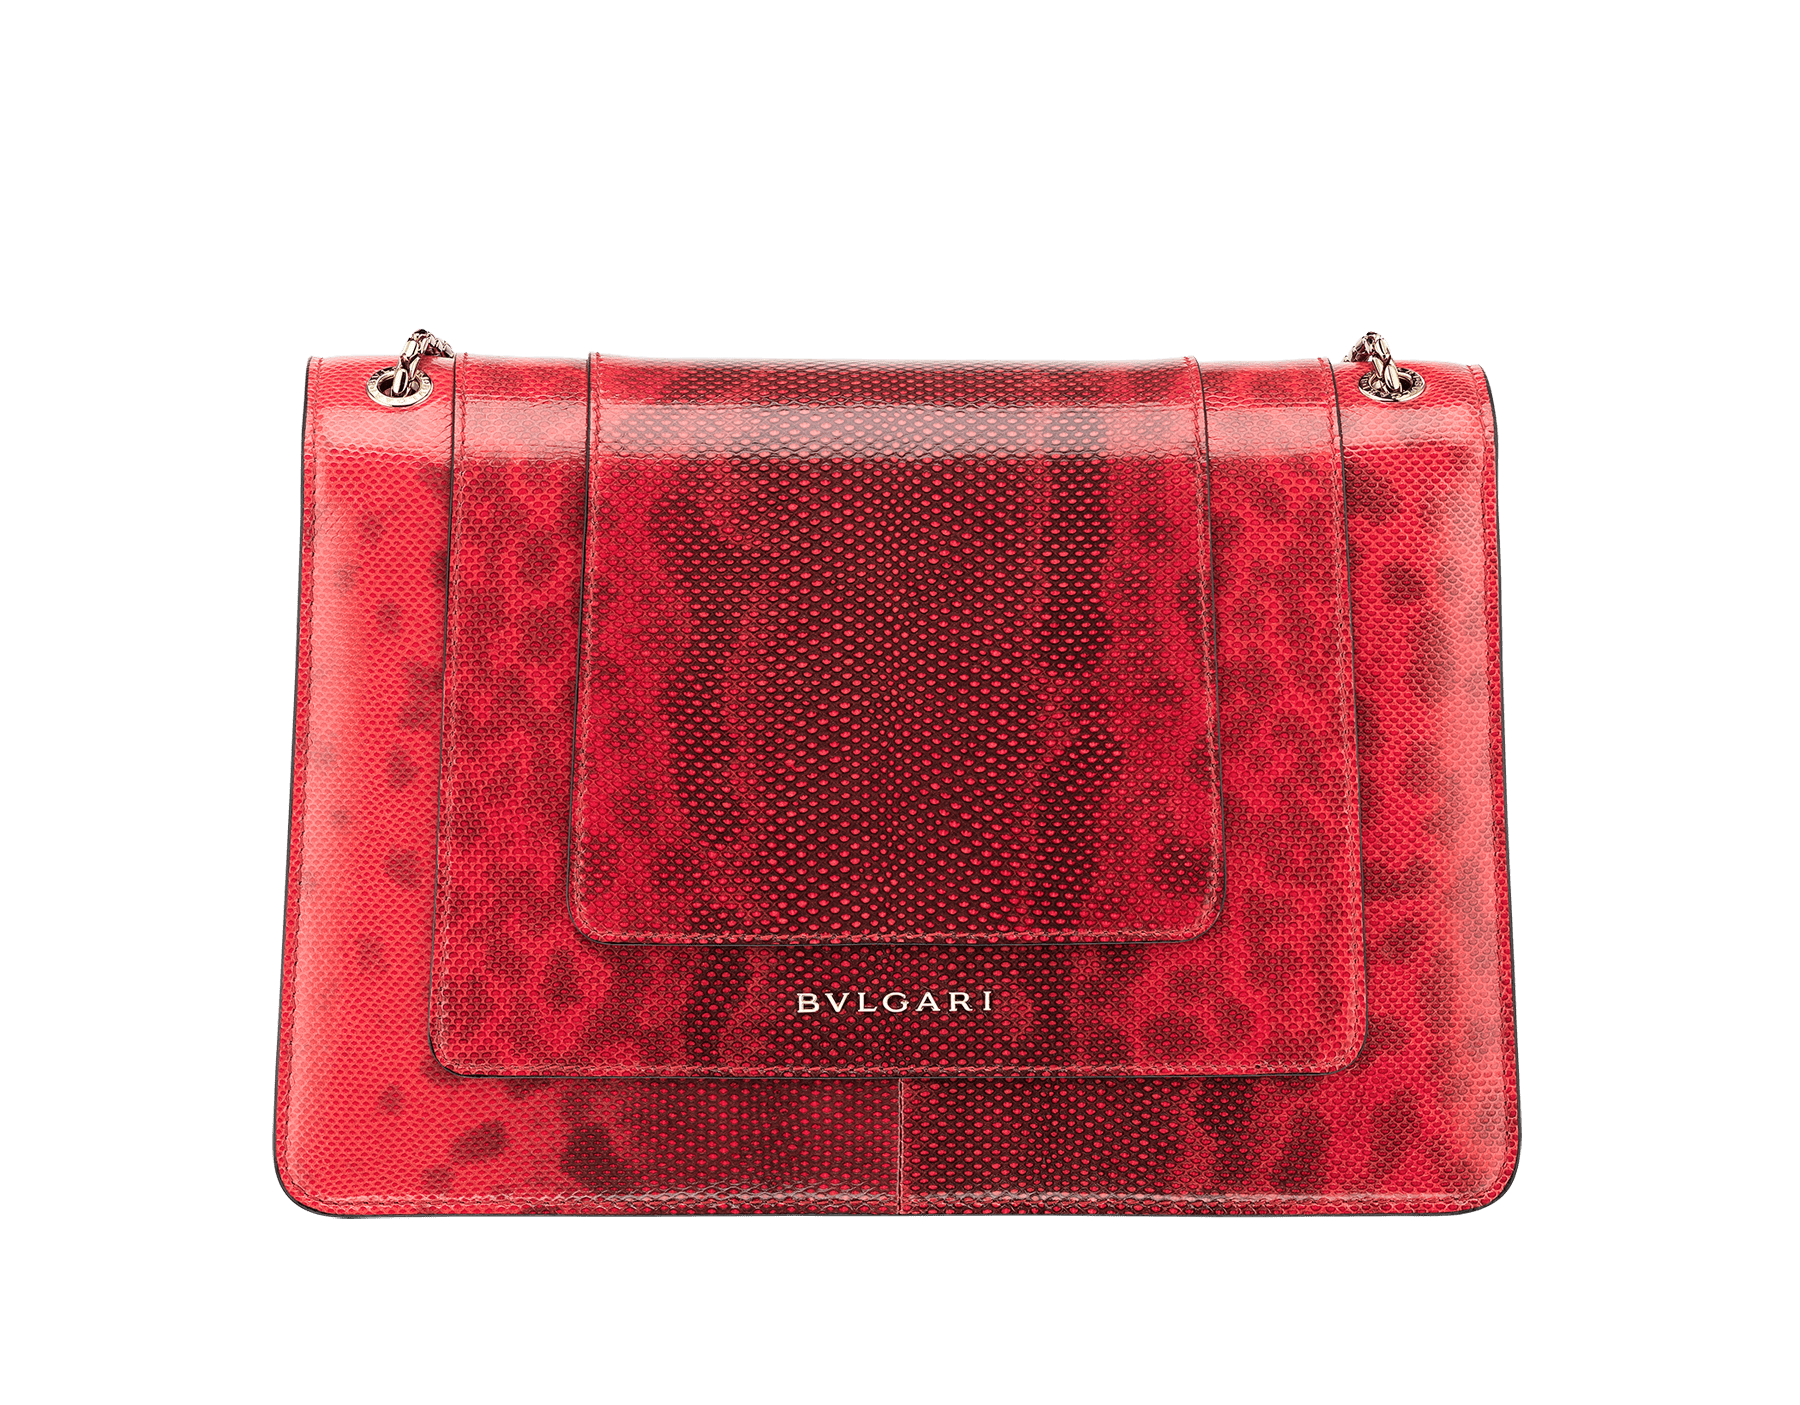 Serpenti Forever shoulder bag in sea star coral shiny karung skin. Snakehead closure in light gold plated brass decorated with black and white enamel, and green malachite eyes. 287918 image 3